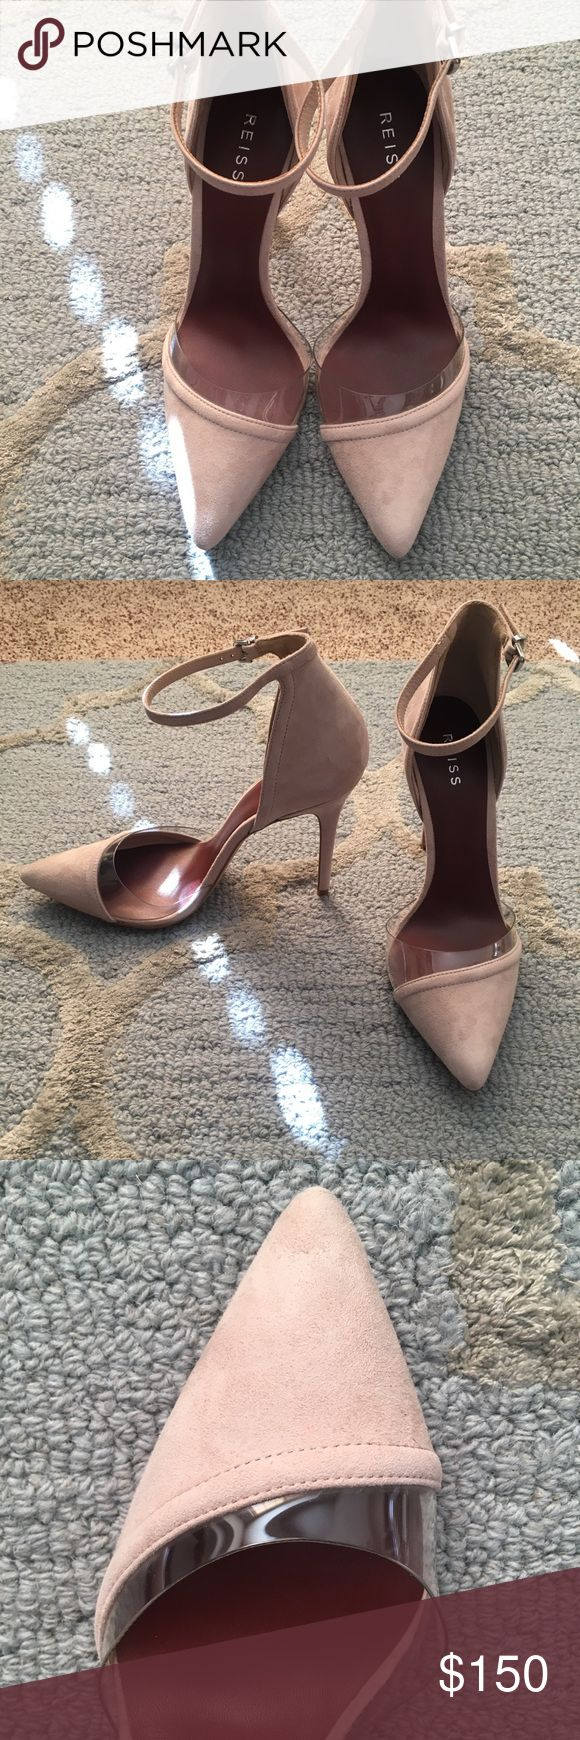 REISS nude pumps Beautiful nude pumps with see through lining on the toe point. Brand new with dustbag and box. Suede. Reiss Shoes Heels